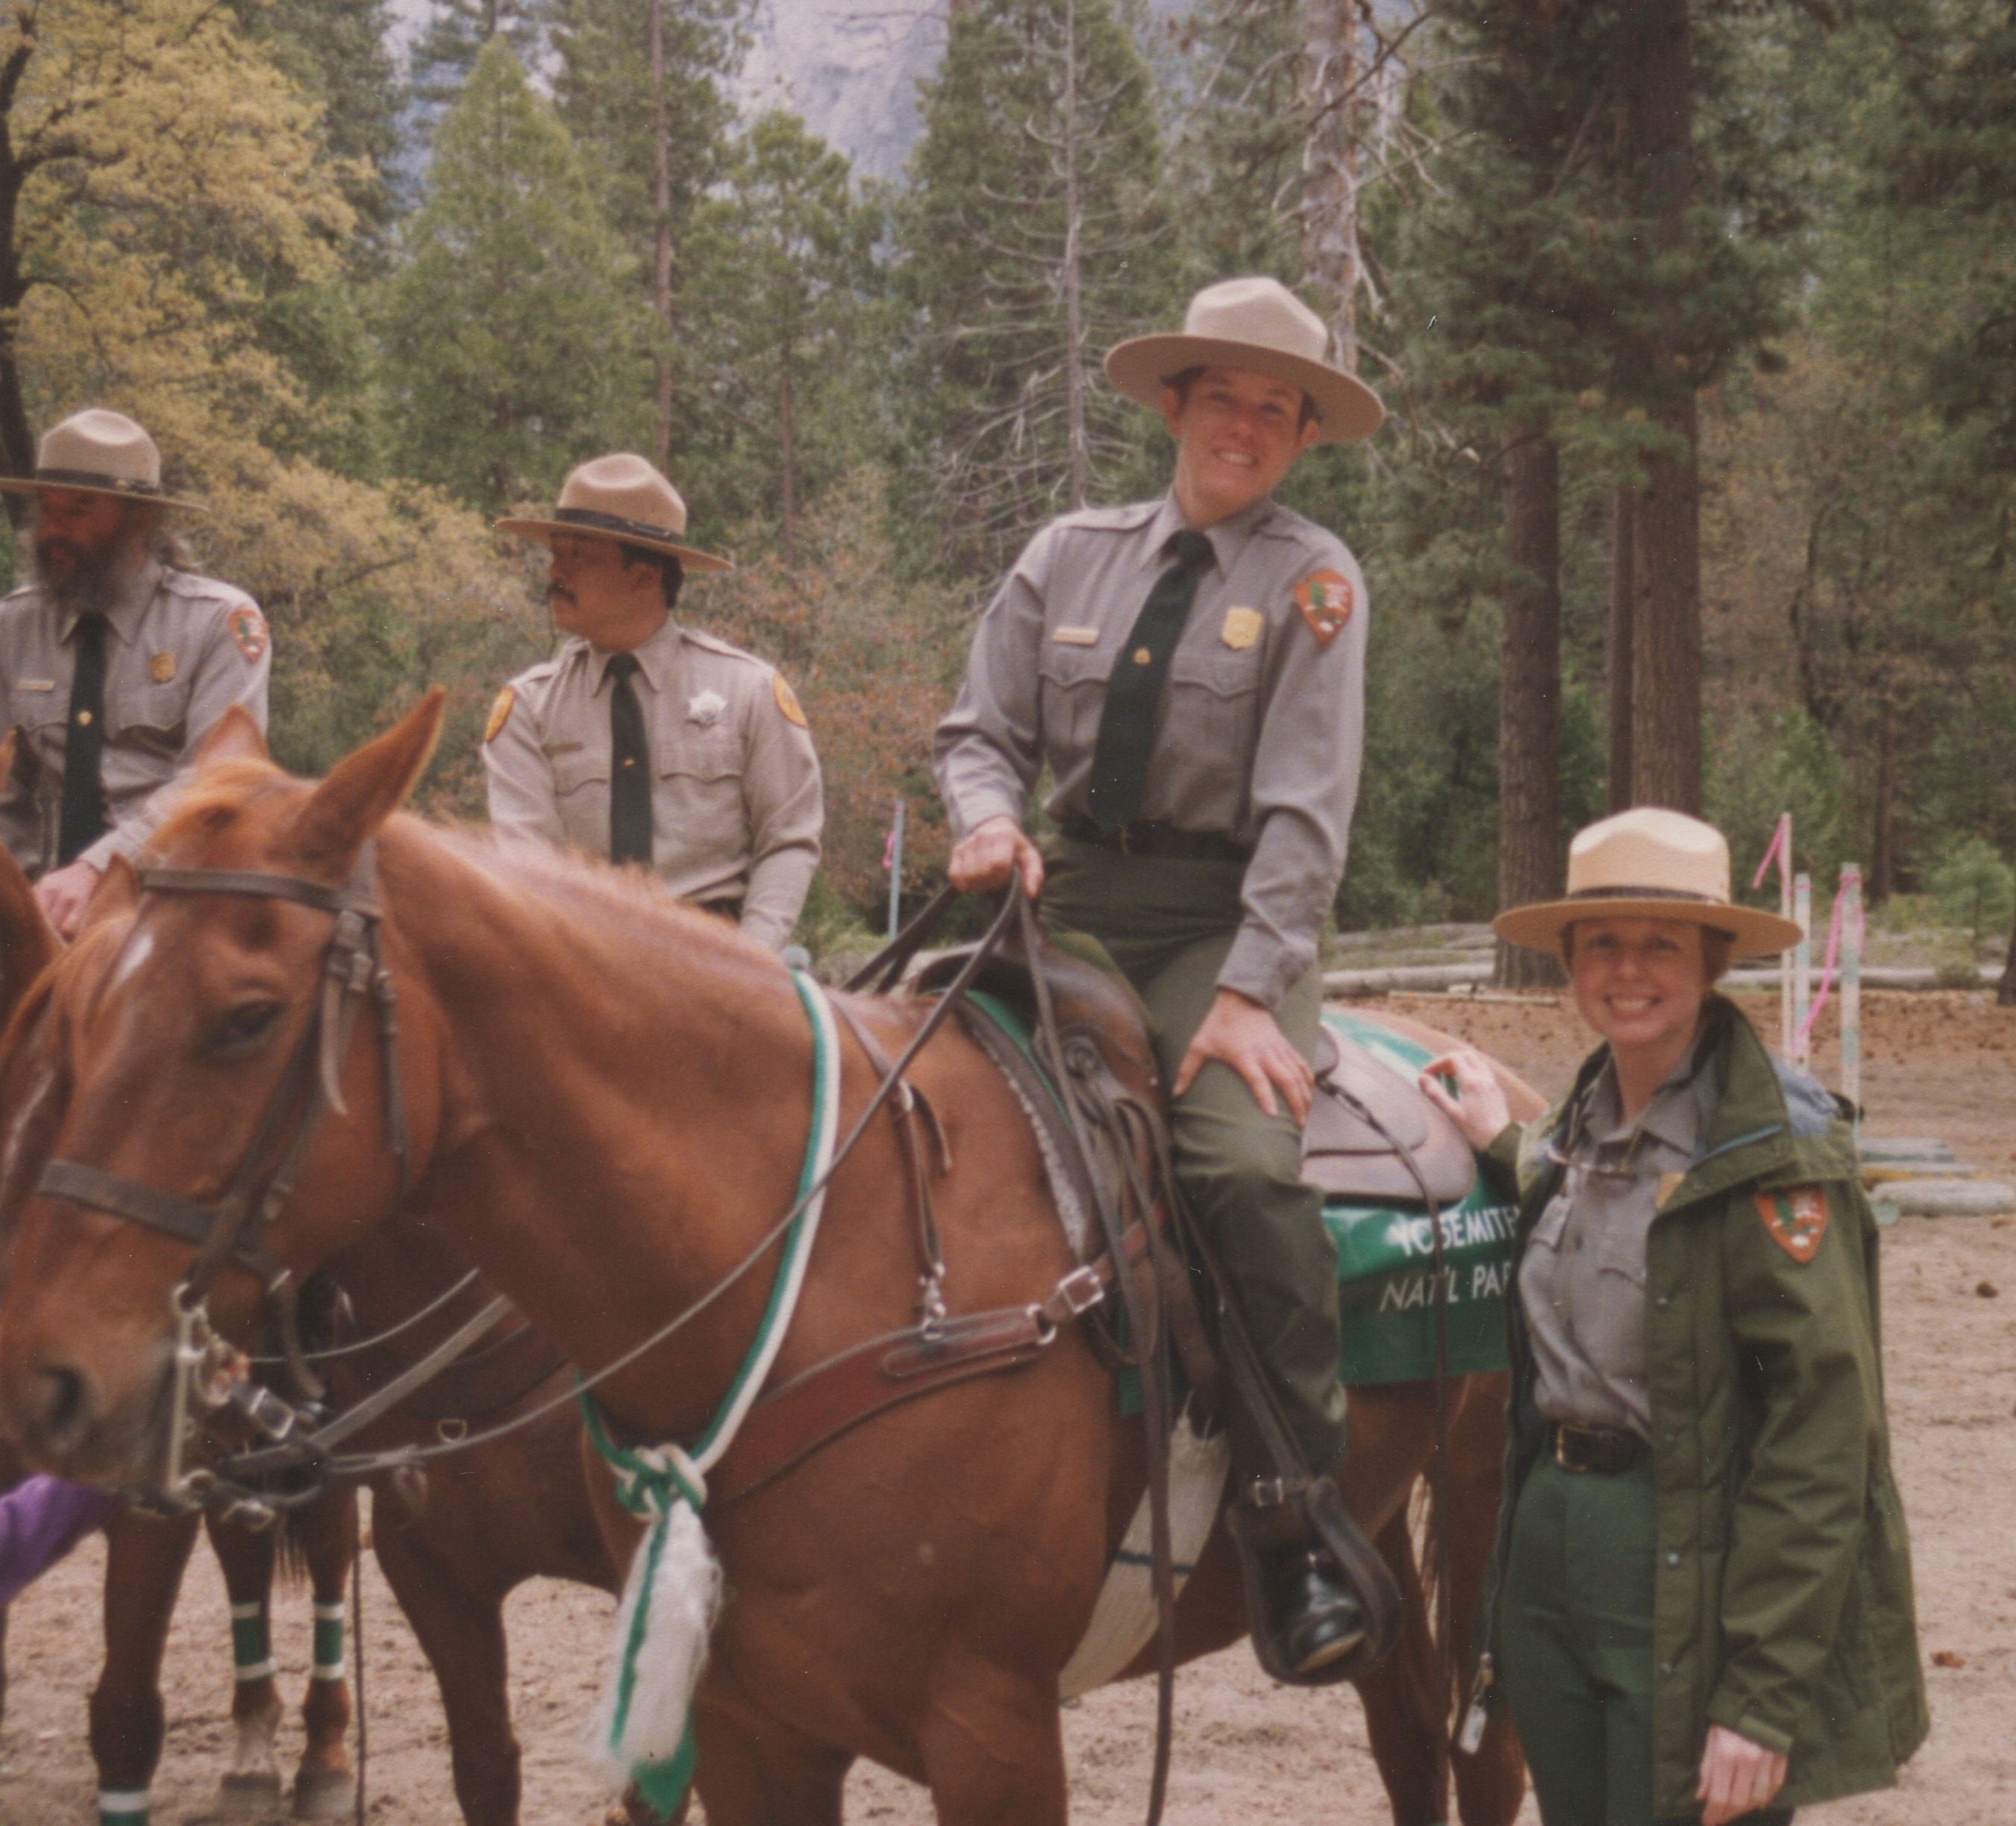 Andrea Lankford Horse Patrol Graduation Yosemite National